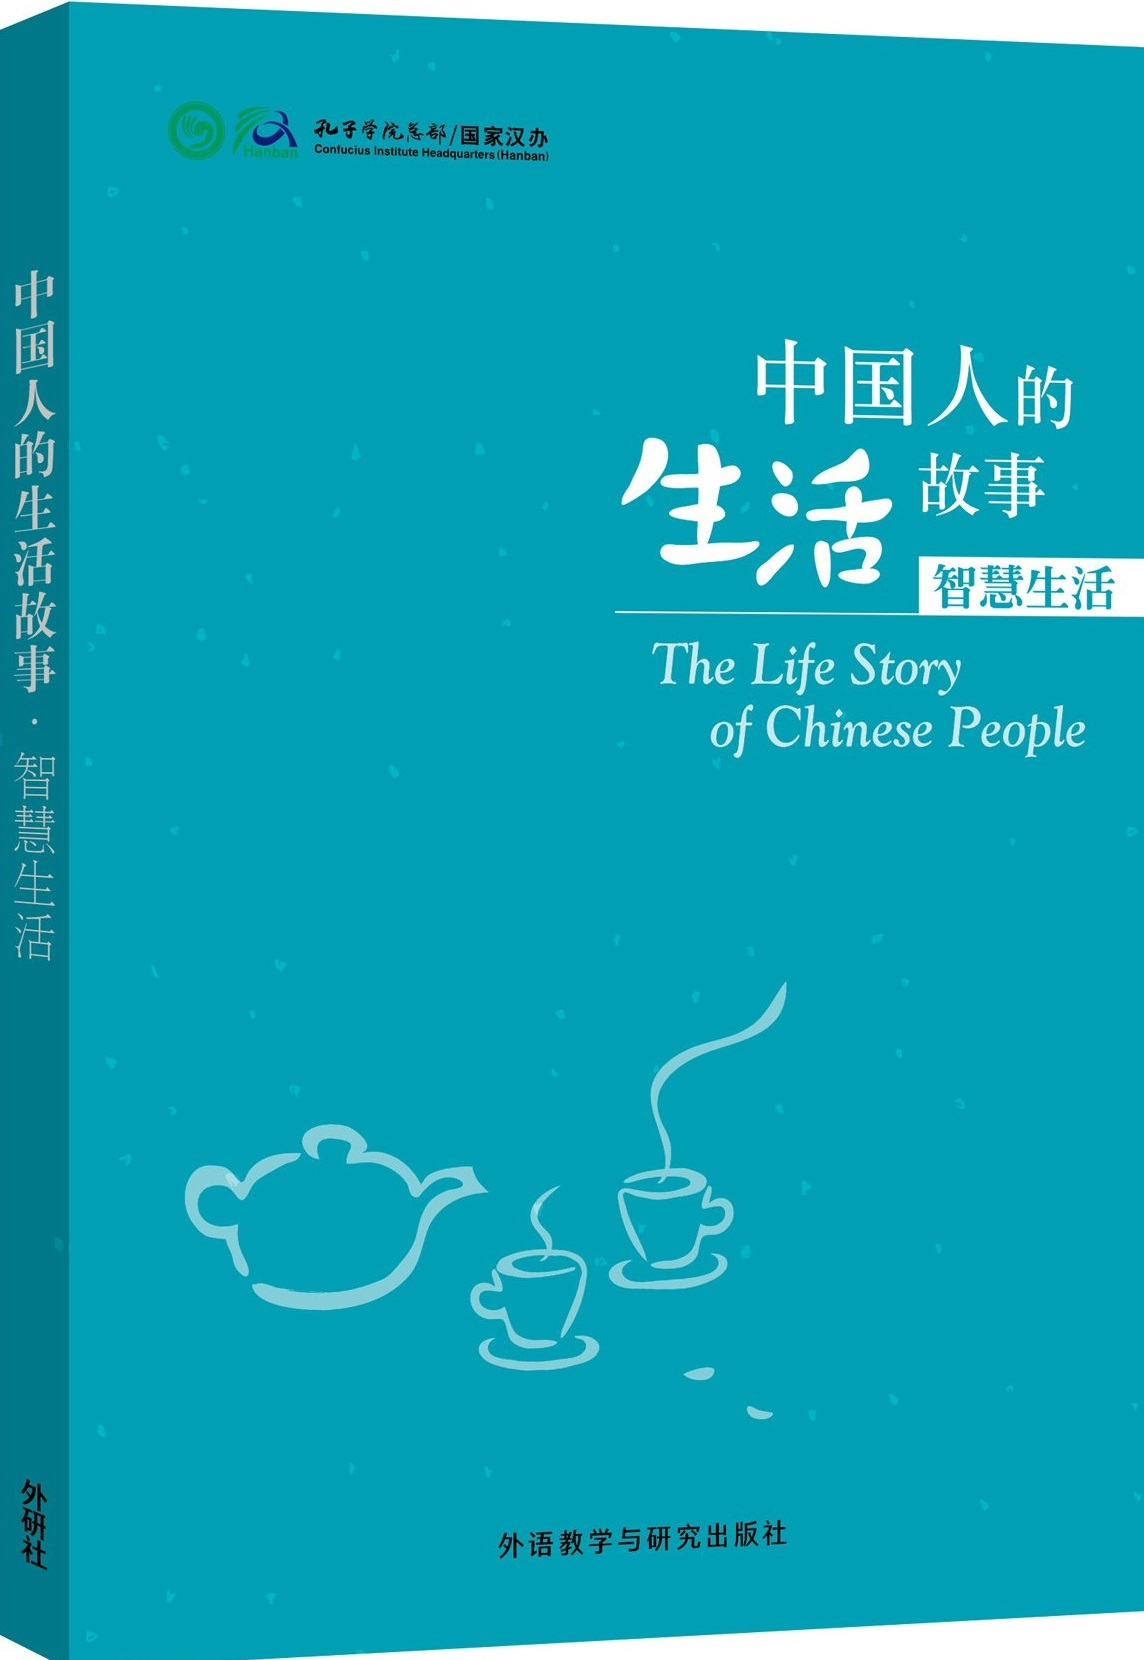 Stories of Chinese People's Lives - Wisdom of Lives